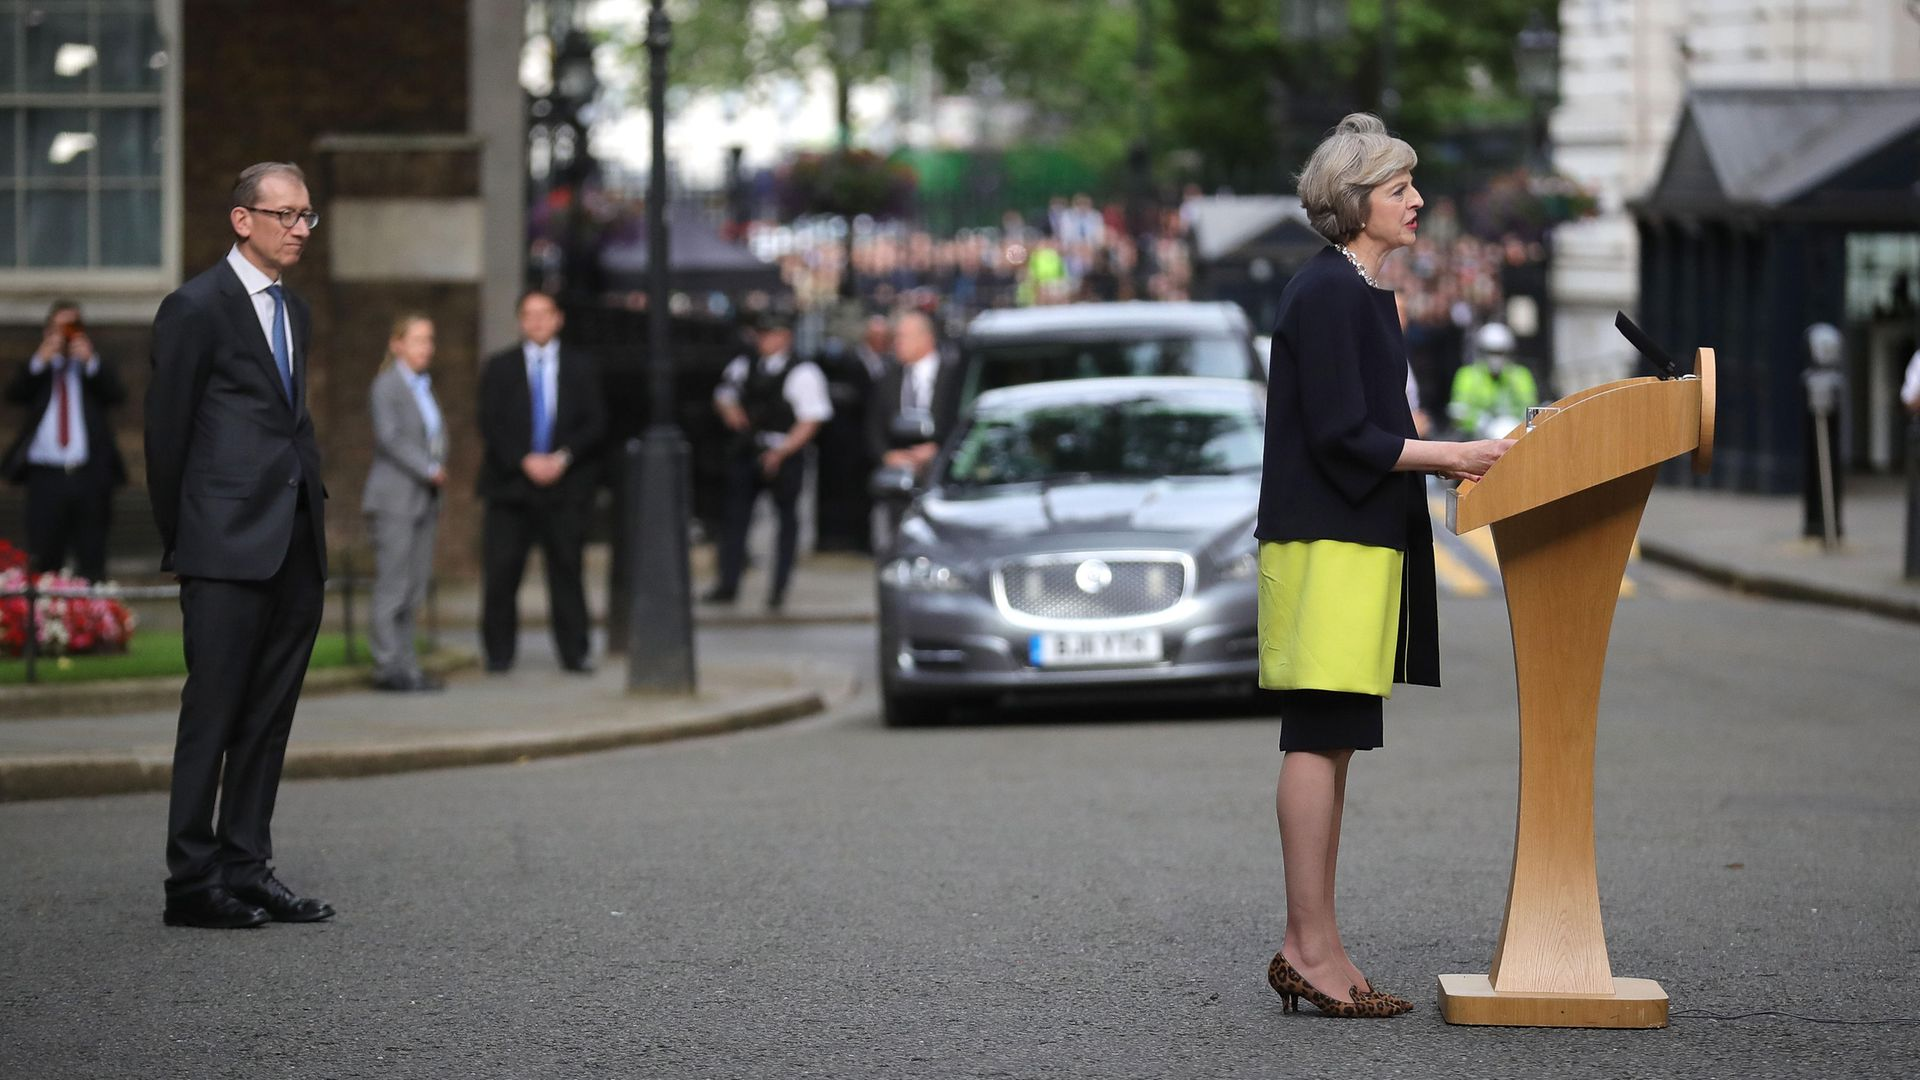 Theresa May, with husband Philip looking on, on the day she became prime minister, July 13, 2016 - Credit: Getty Images